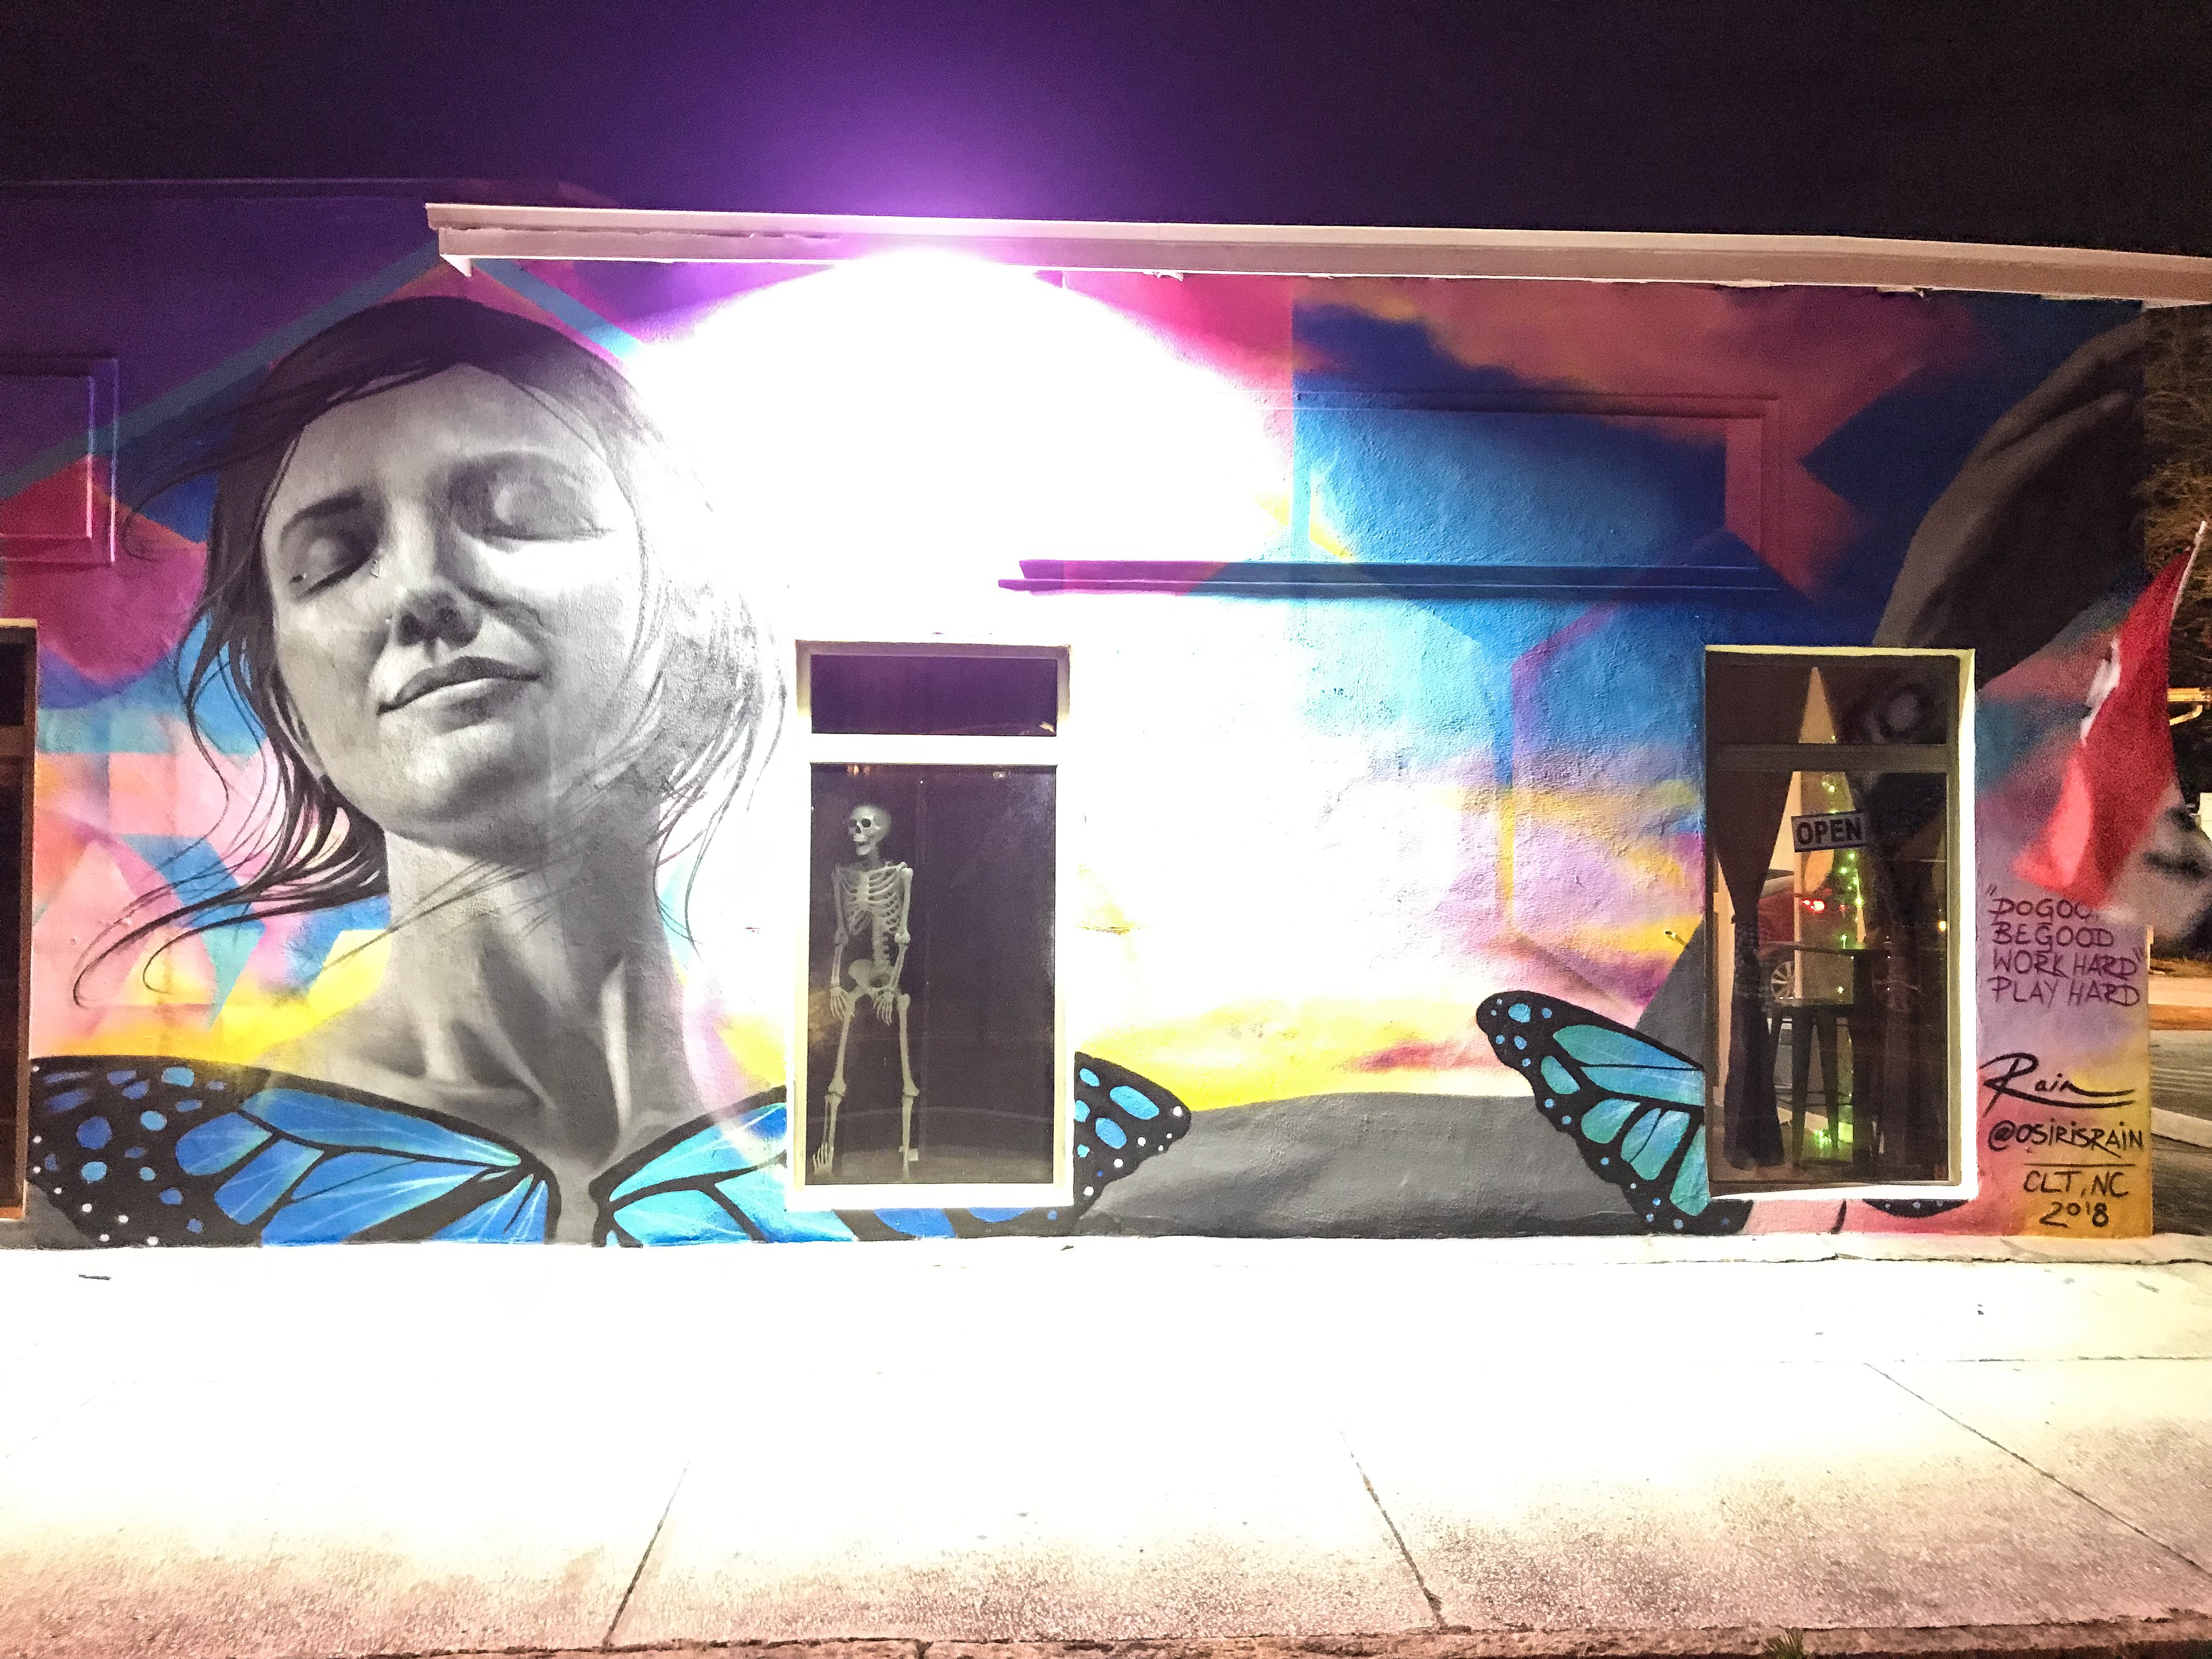 The mural created by Osiris Rain